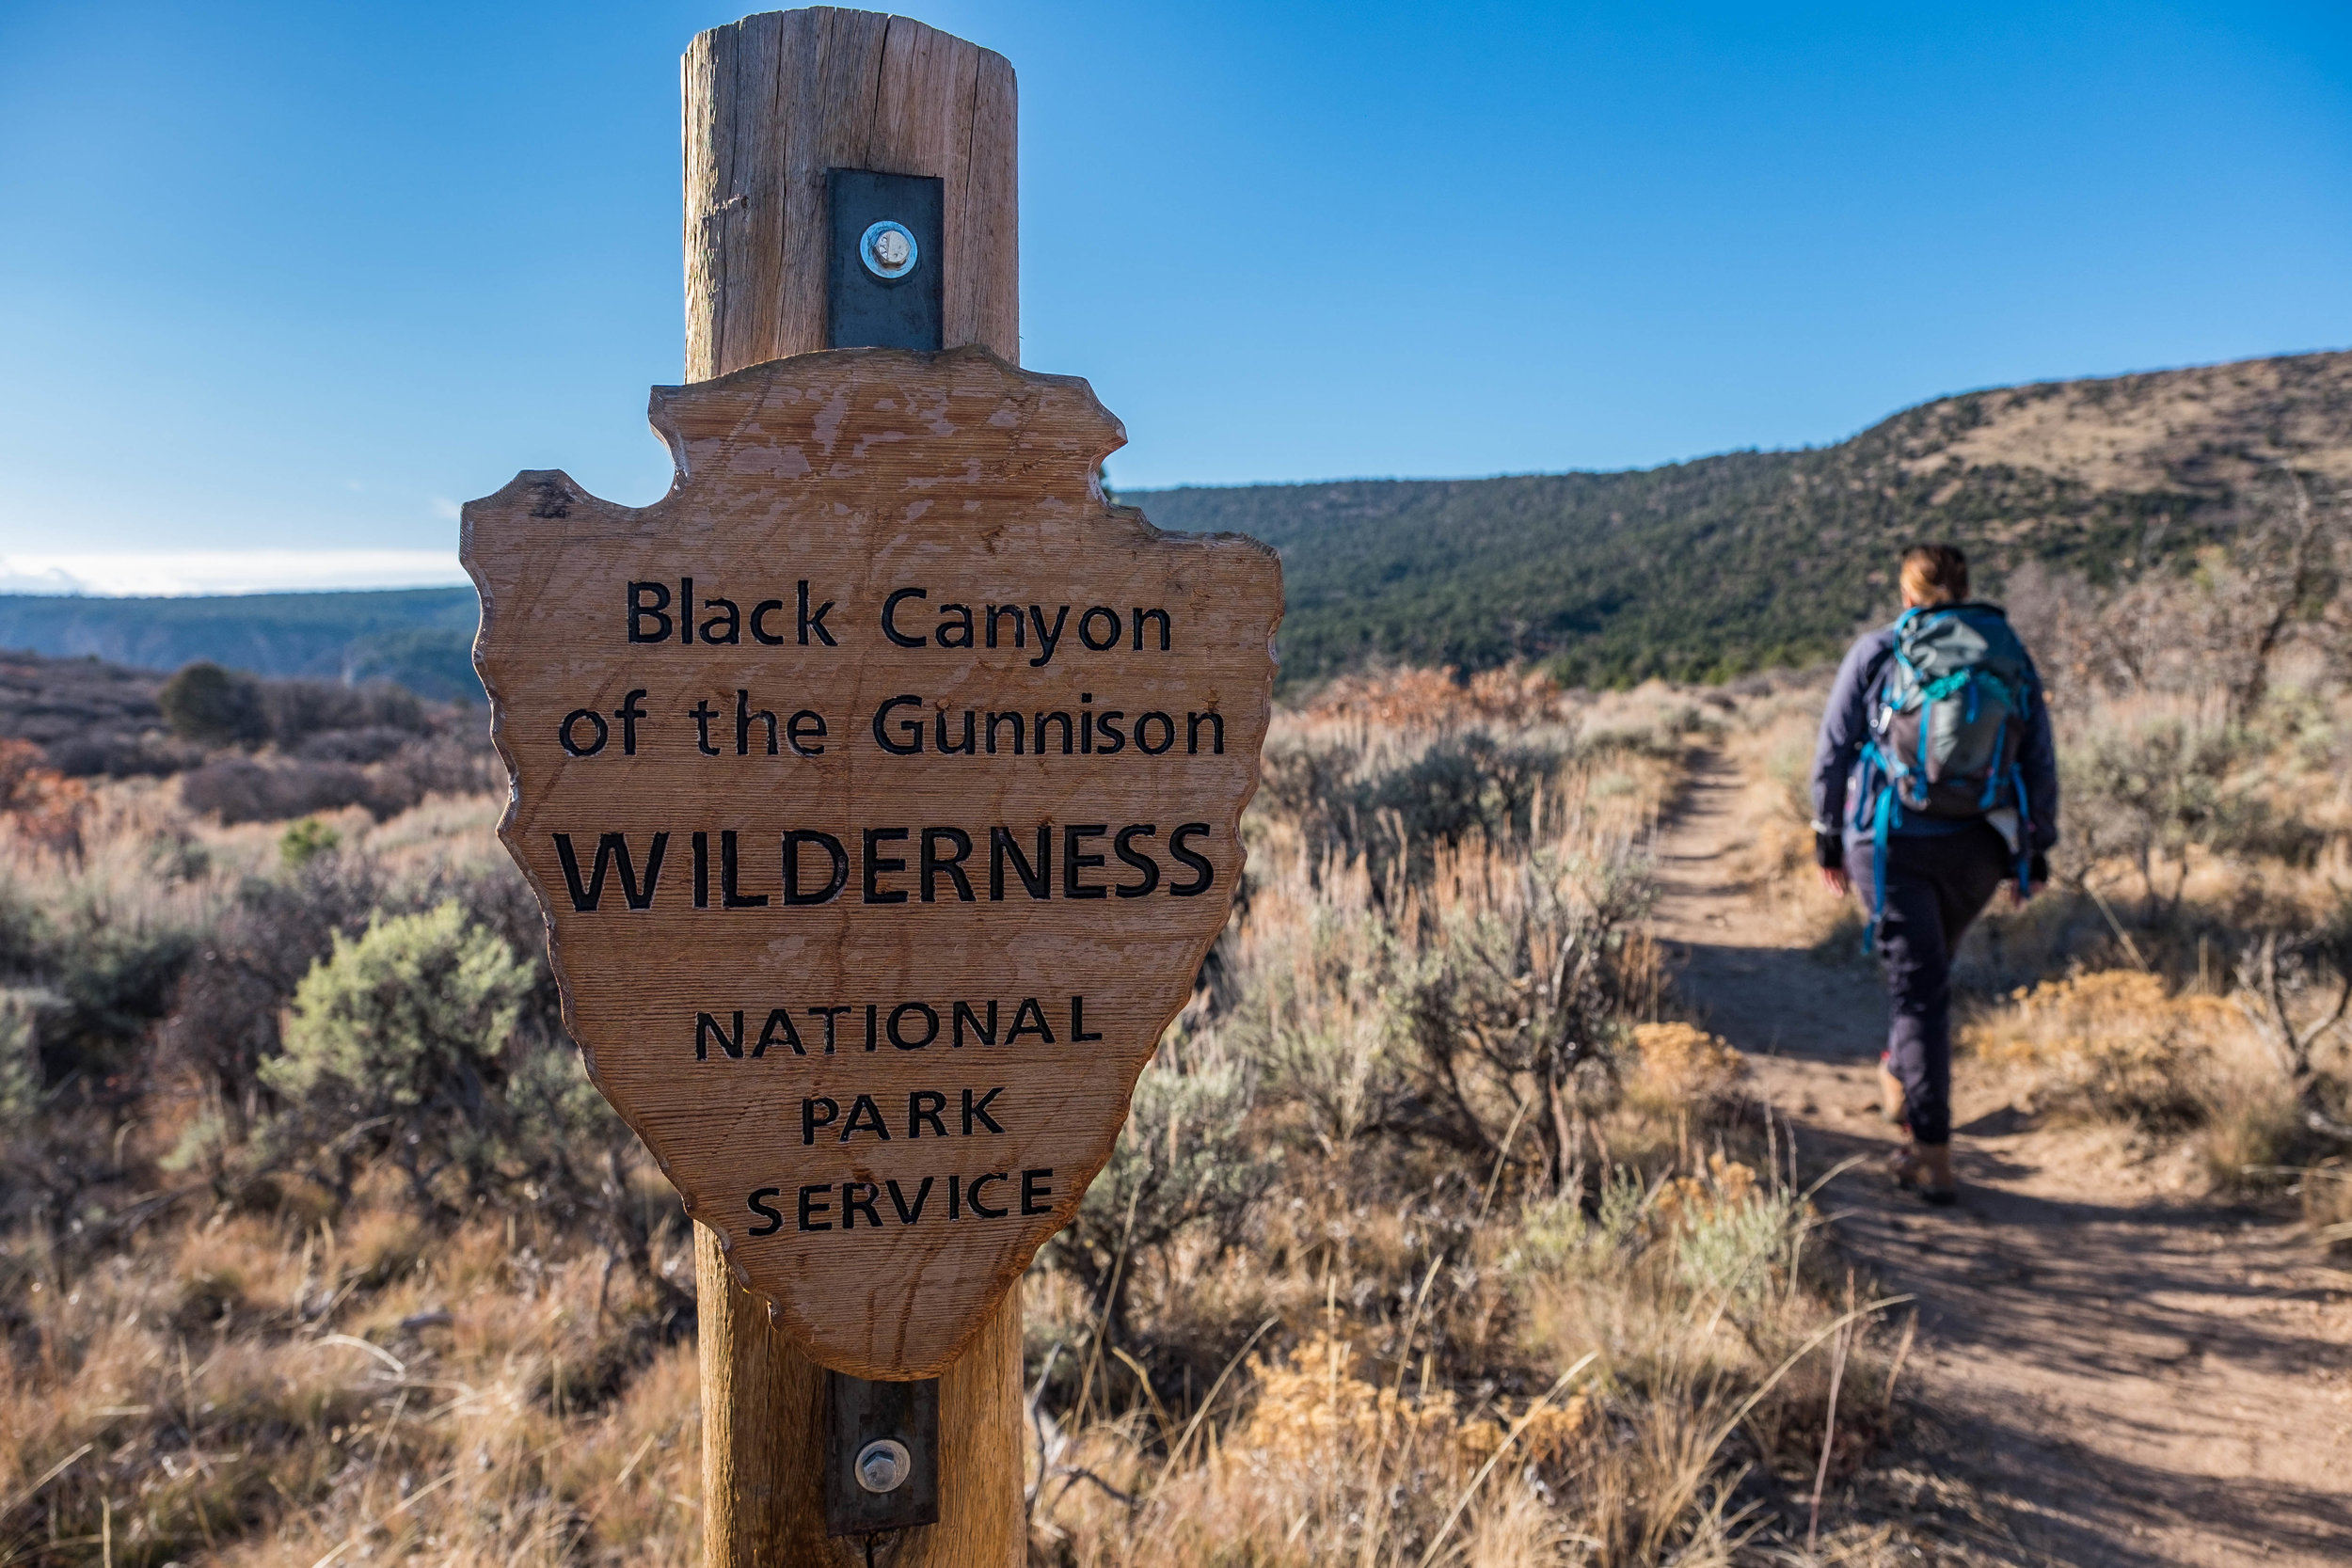 We are officially in the Black Canyon wilderness!